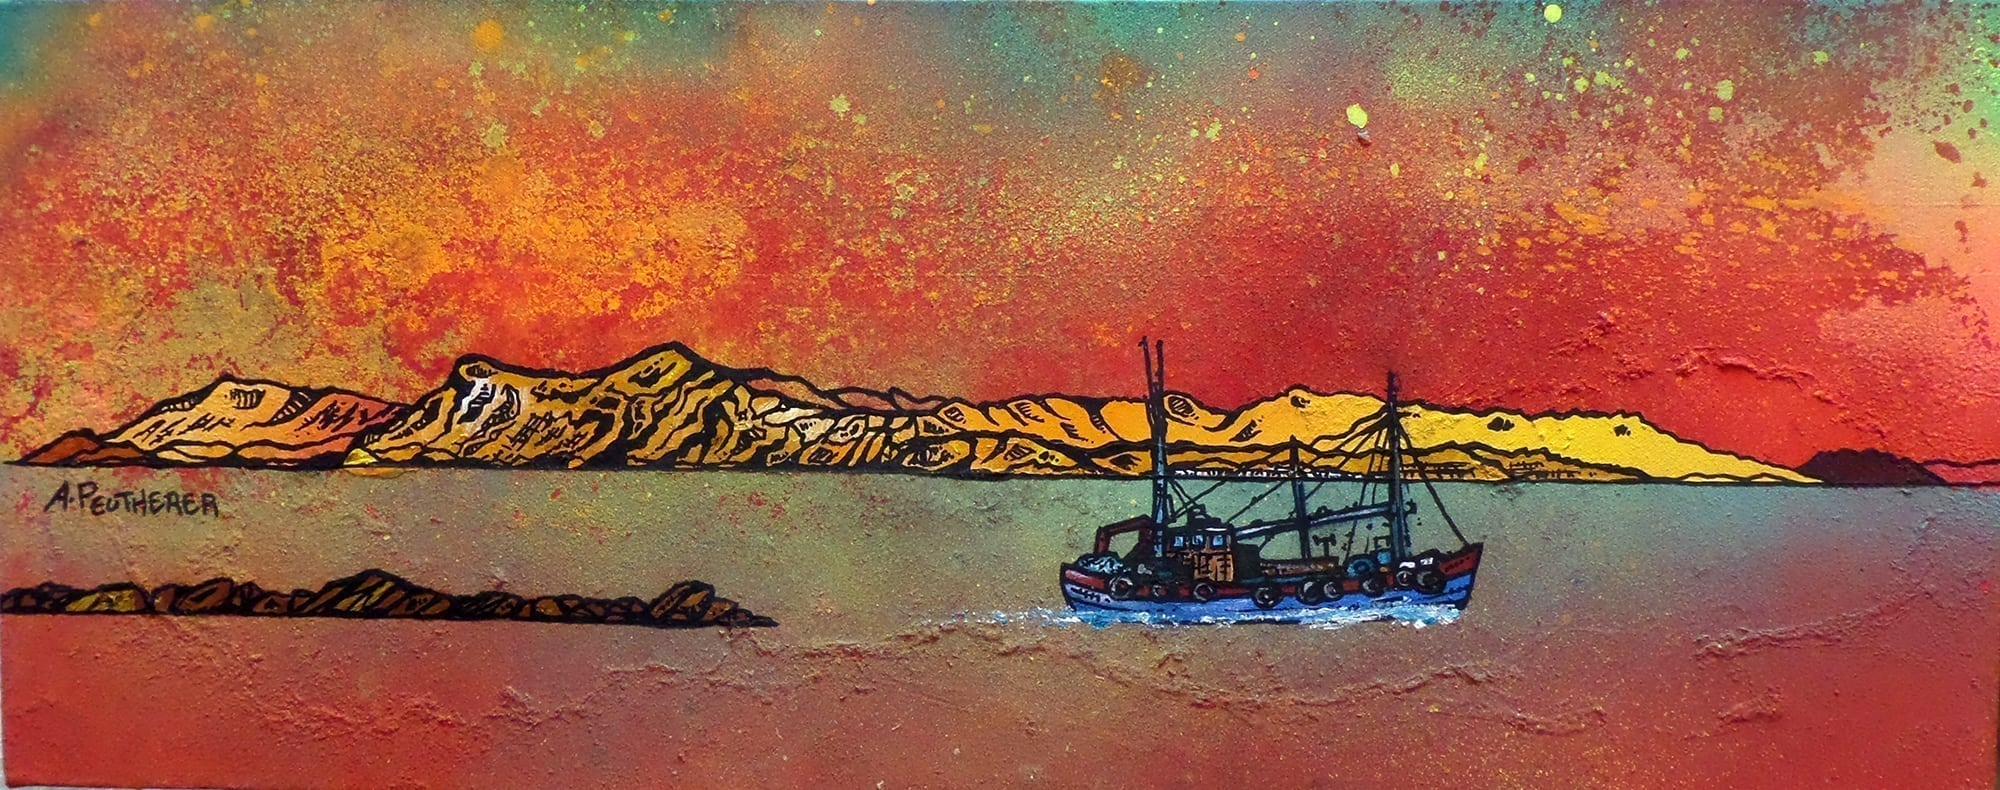 Mallaig from Skye, Scotland. Painting & prints by Scottish artist A Peutherer